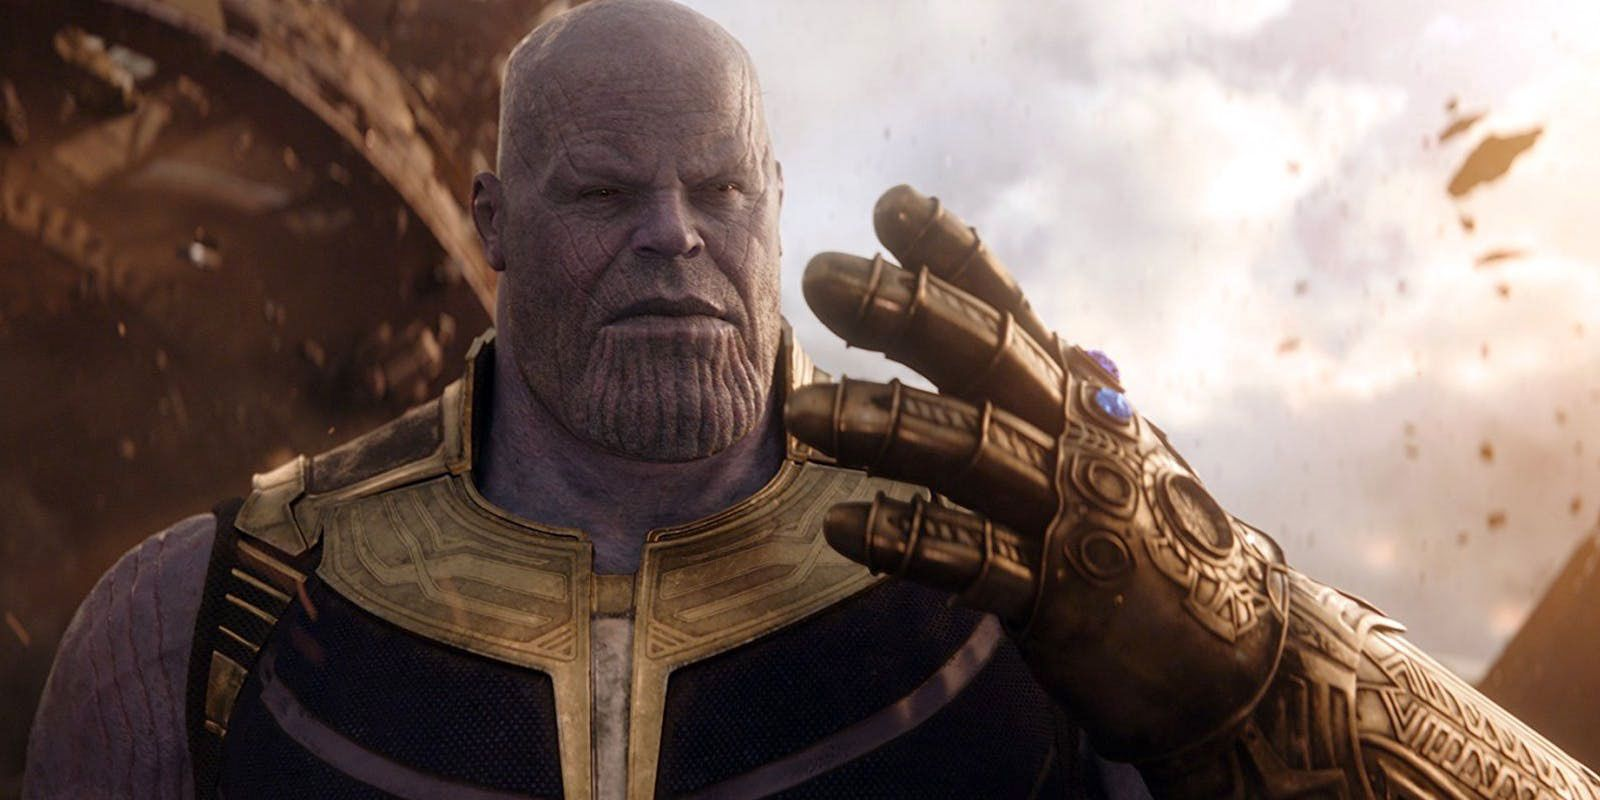 Avengers: Infinity War Soul Stone ending theory confirmed by directors